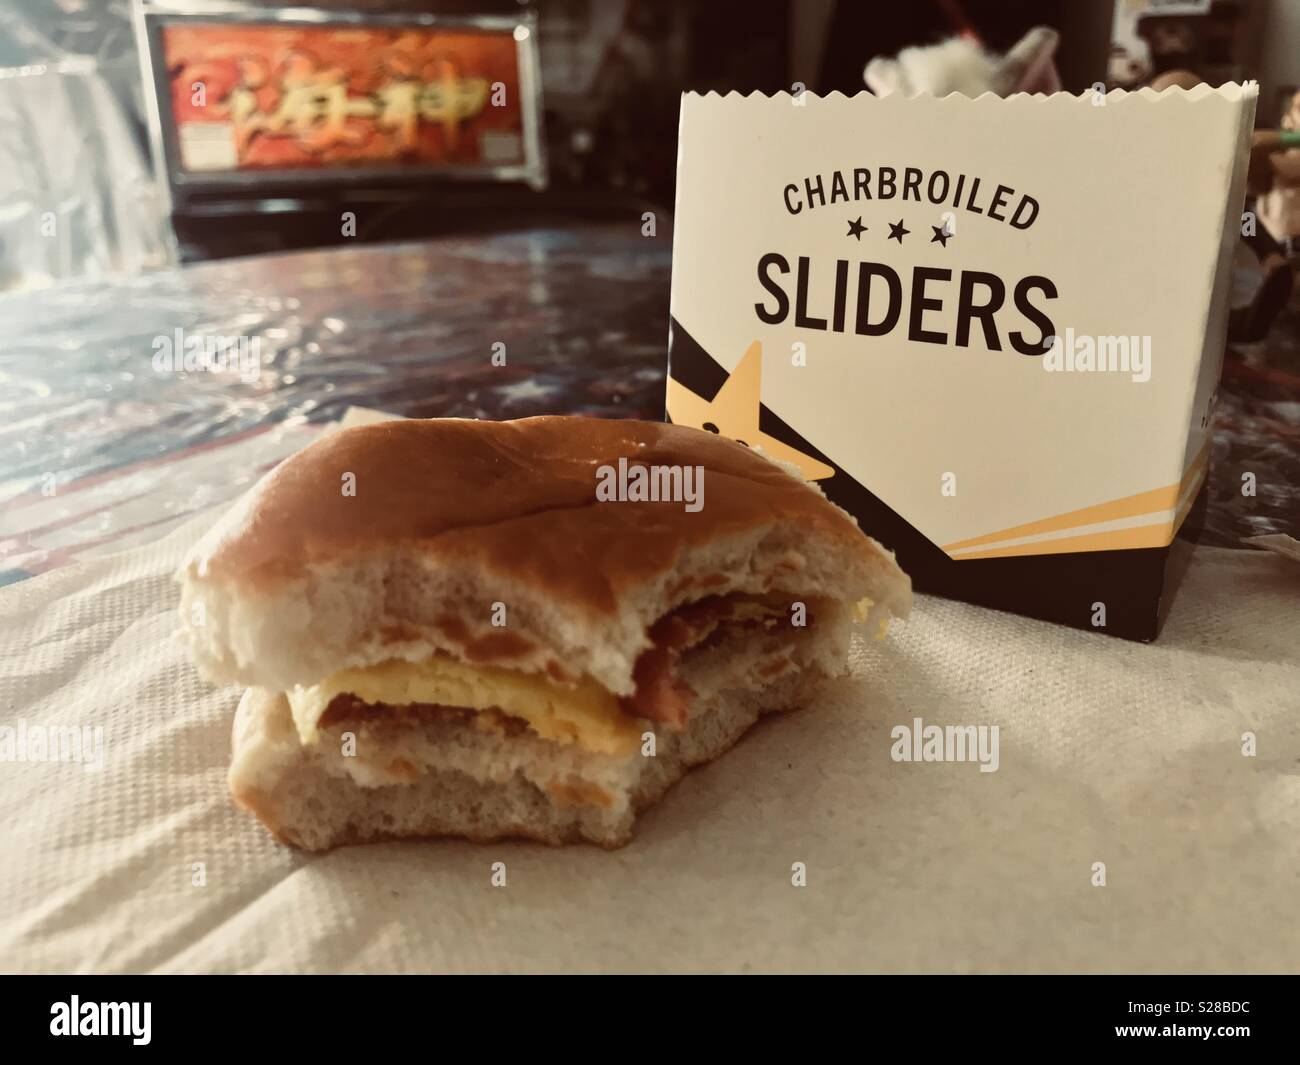 hardees high resolution stock photography and images alamy https www alamy com hardees breakfast sliders image311200552 html